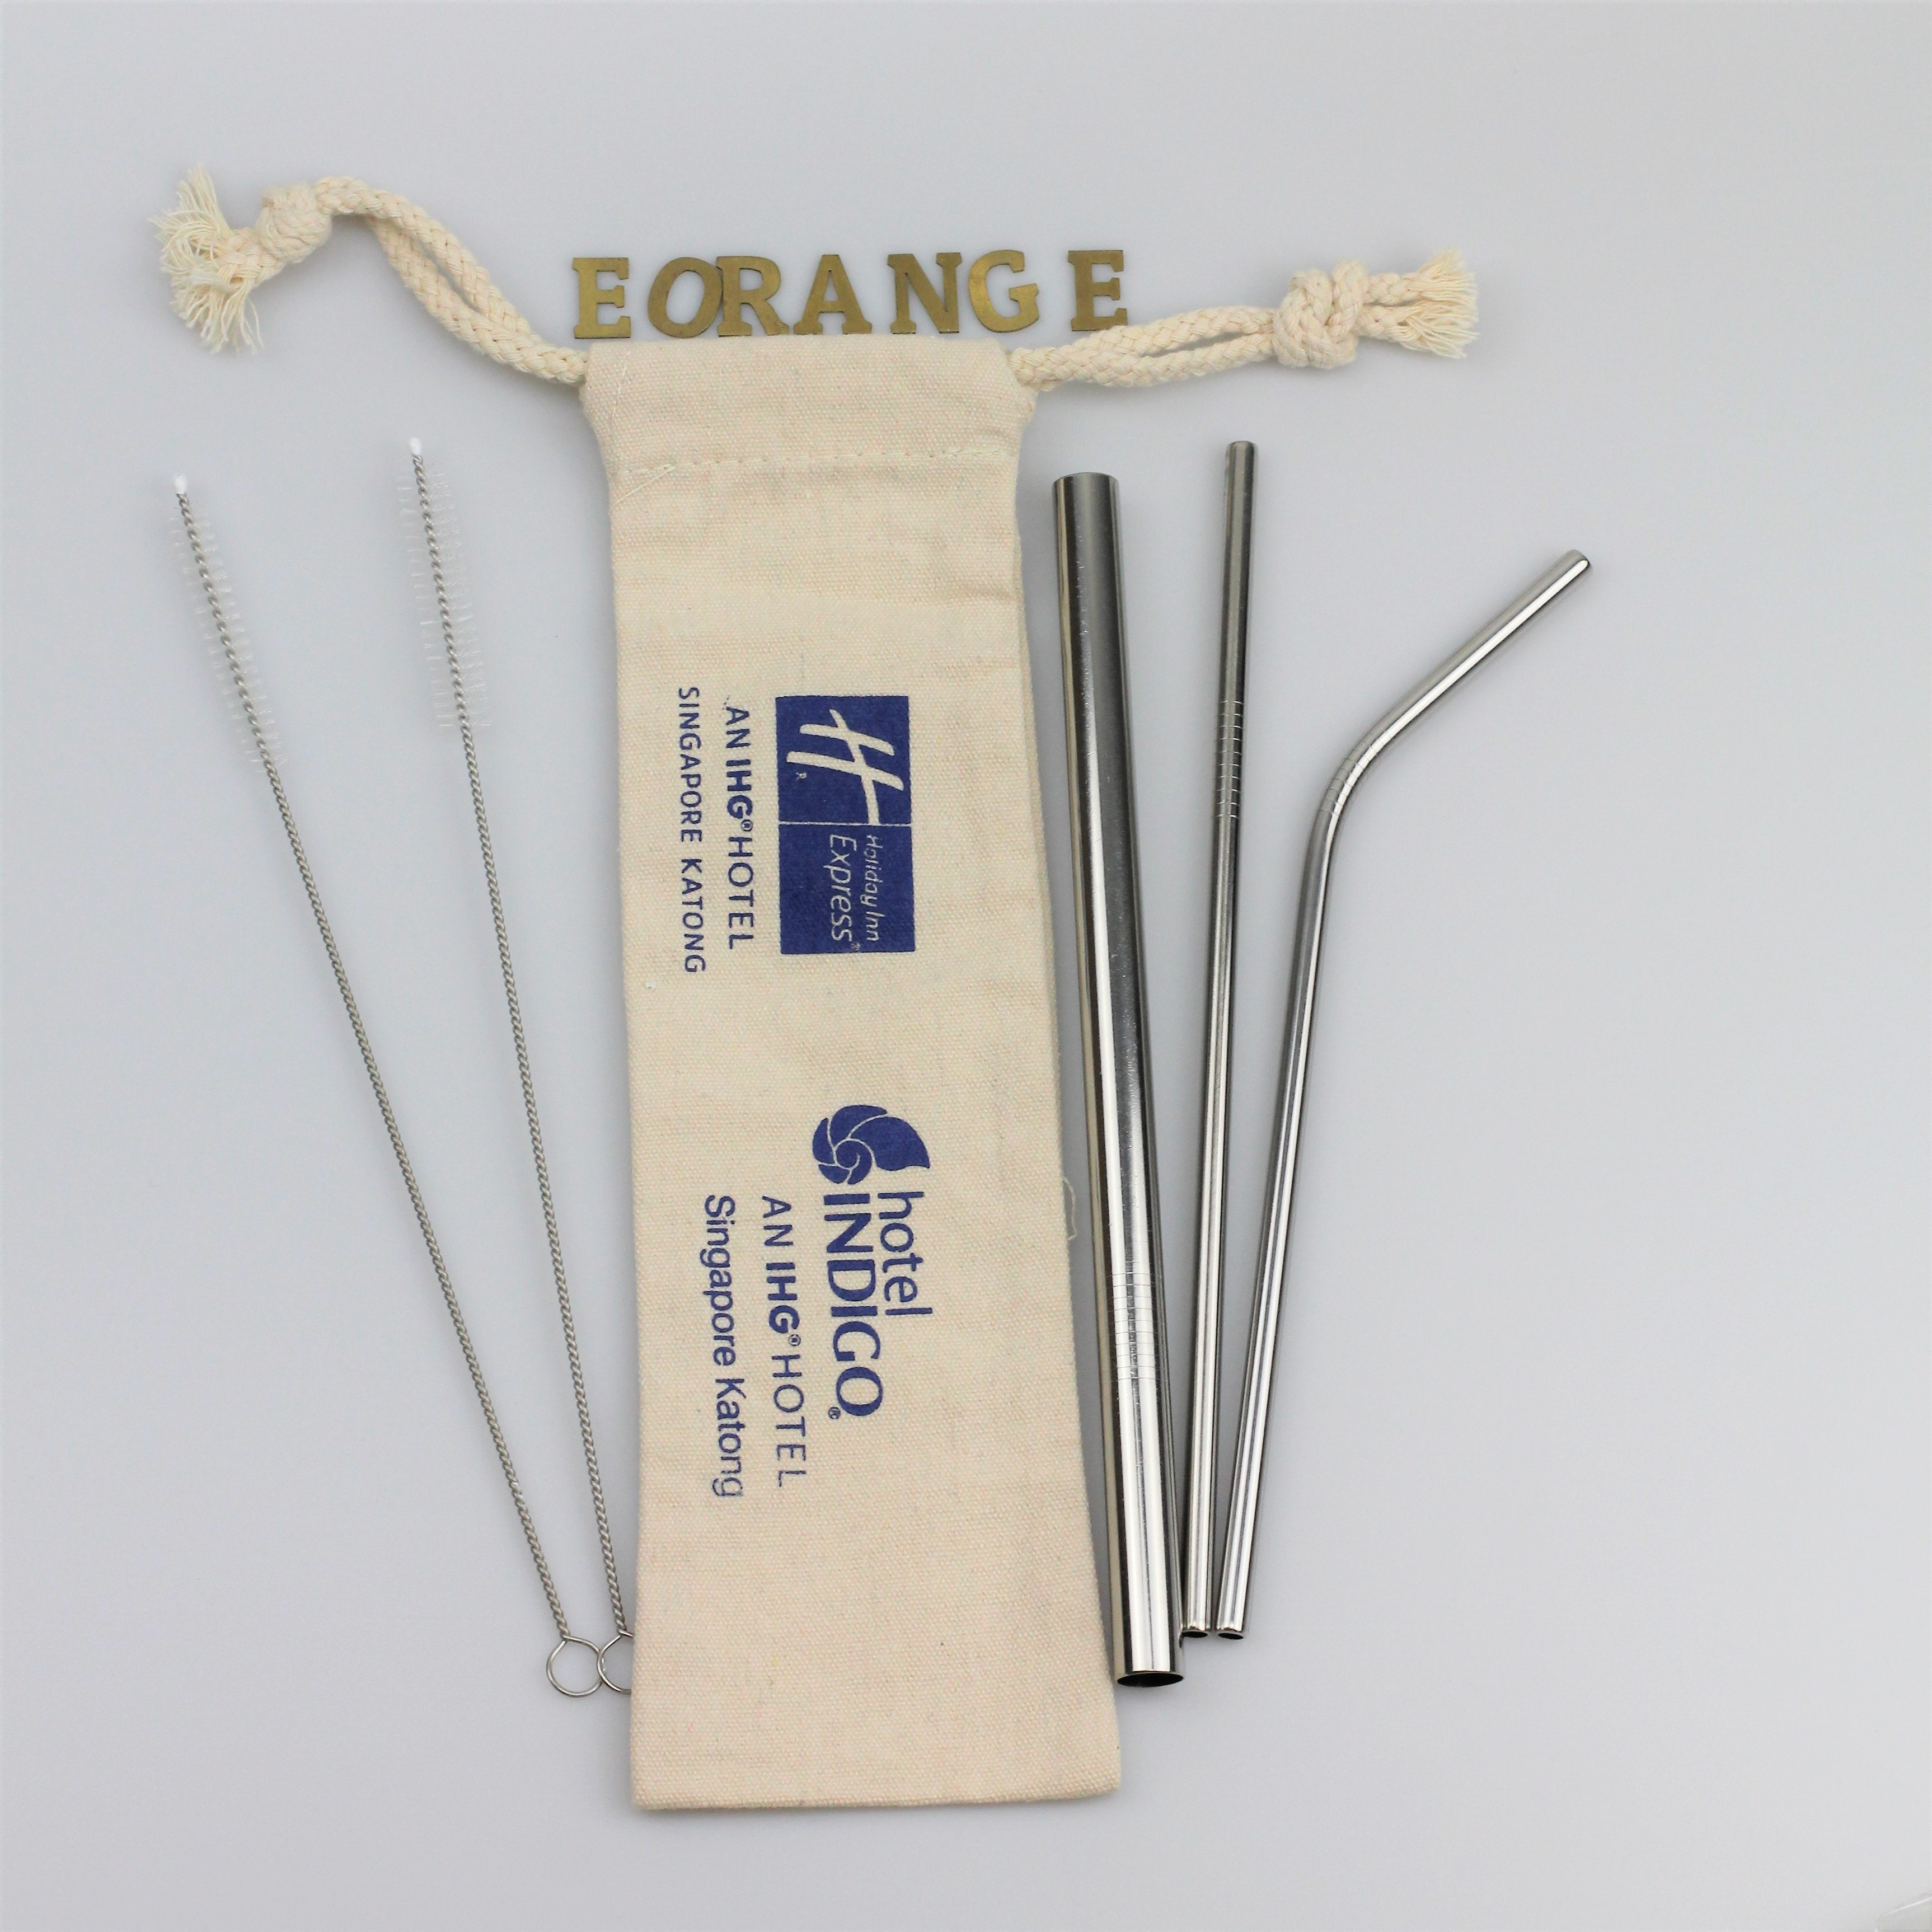 Reusable Stainless Steel Metal Straw Set Customised logo laser printing on the straw canvas pouch Environmentally friendly